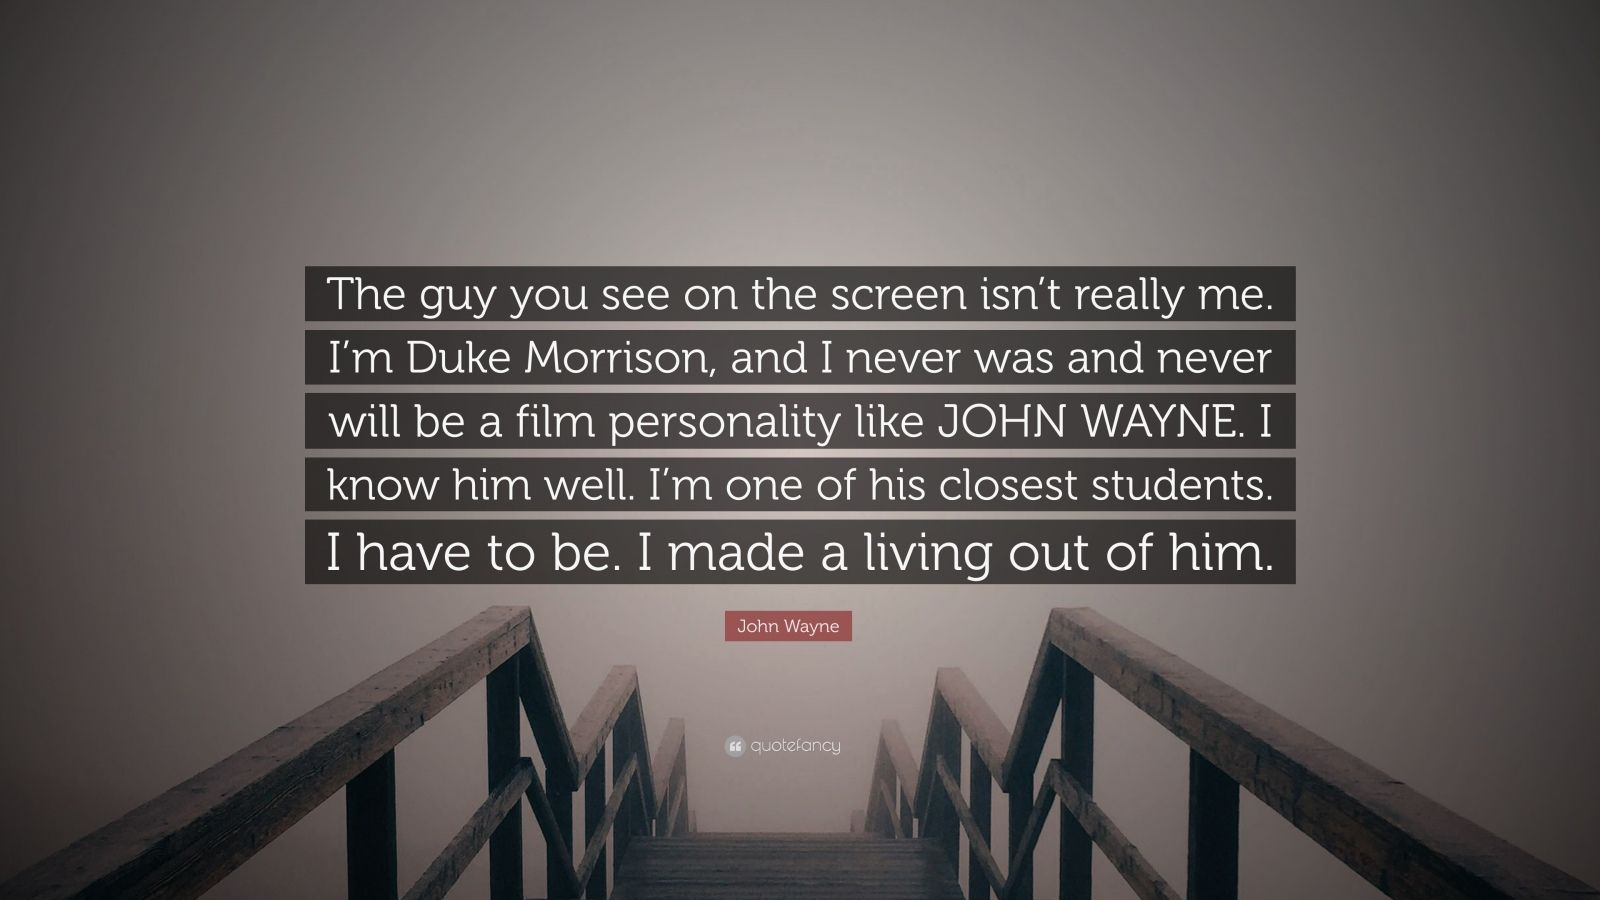 """John Wayne Quote: """"The guy you see on the screen isn't really me. I'm Duke Morrison, and I never was and never will be a film personality like JOHN WAYNE. I know him well. I'm one of his closest students. I have to be. I made a living out of him."""""""